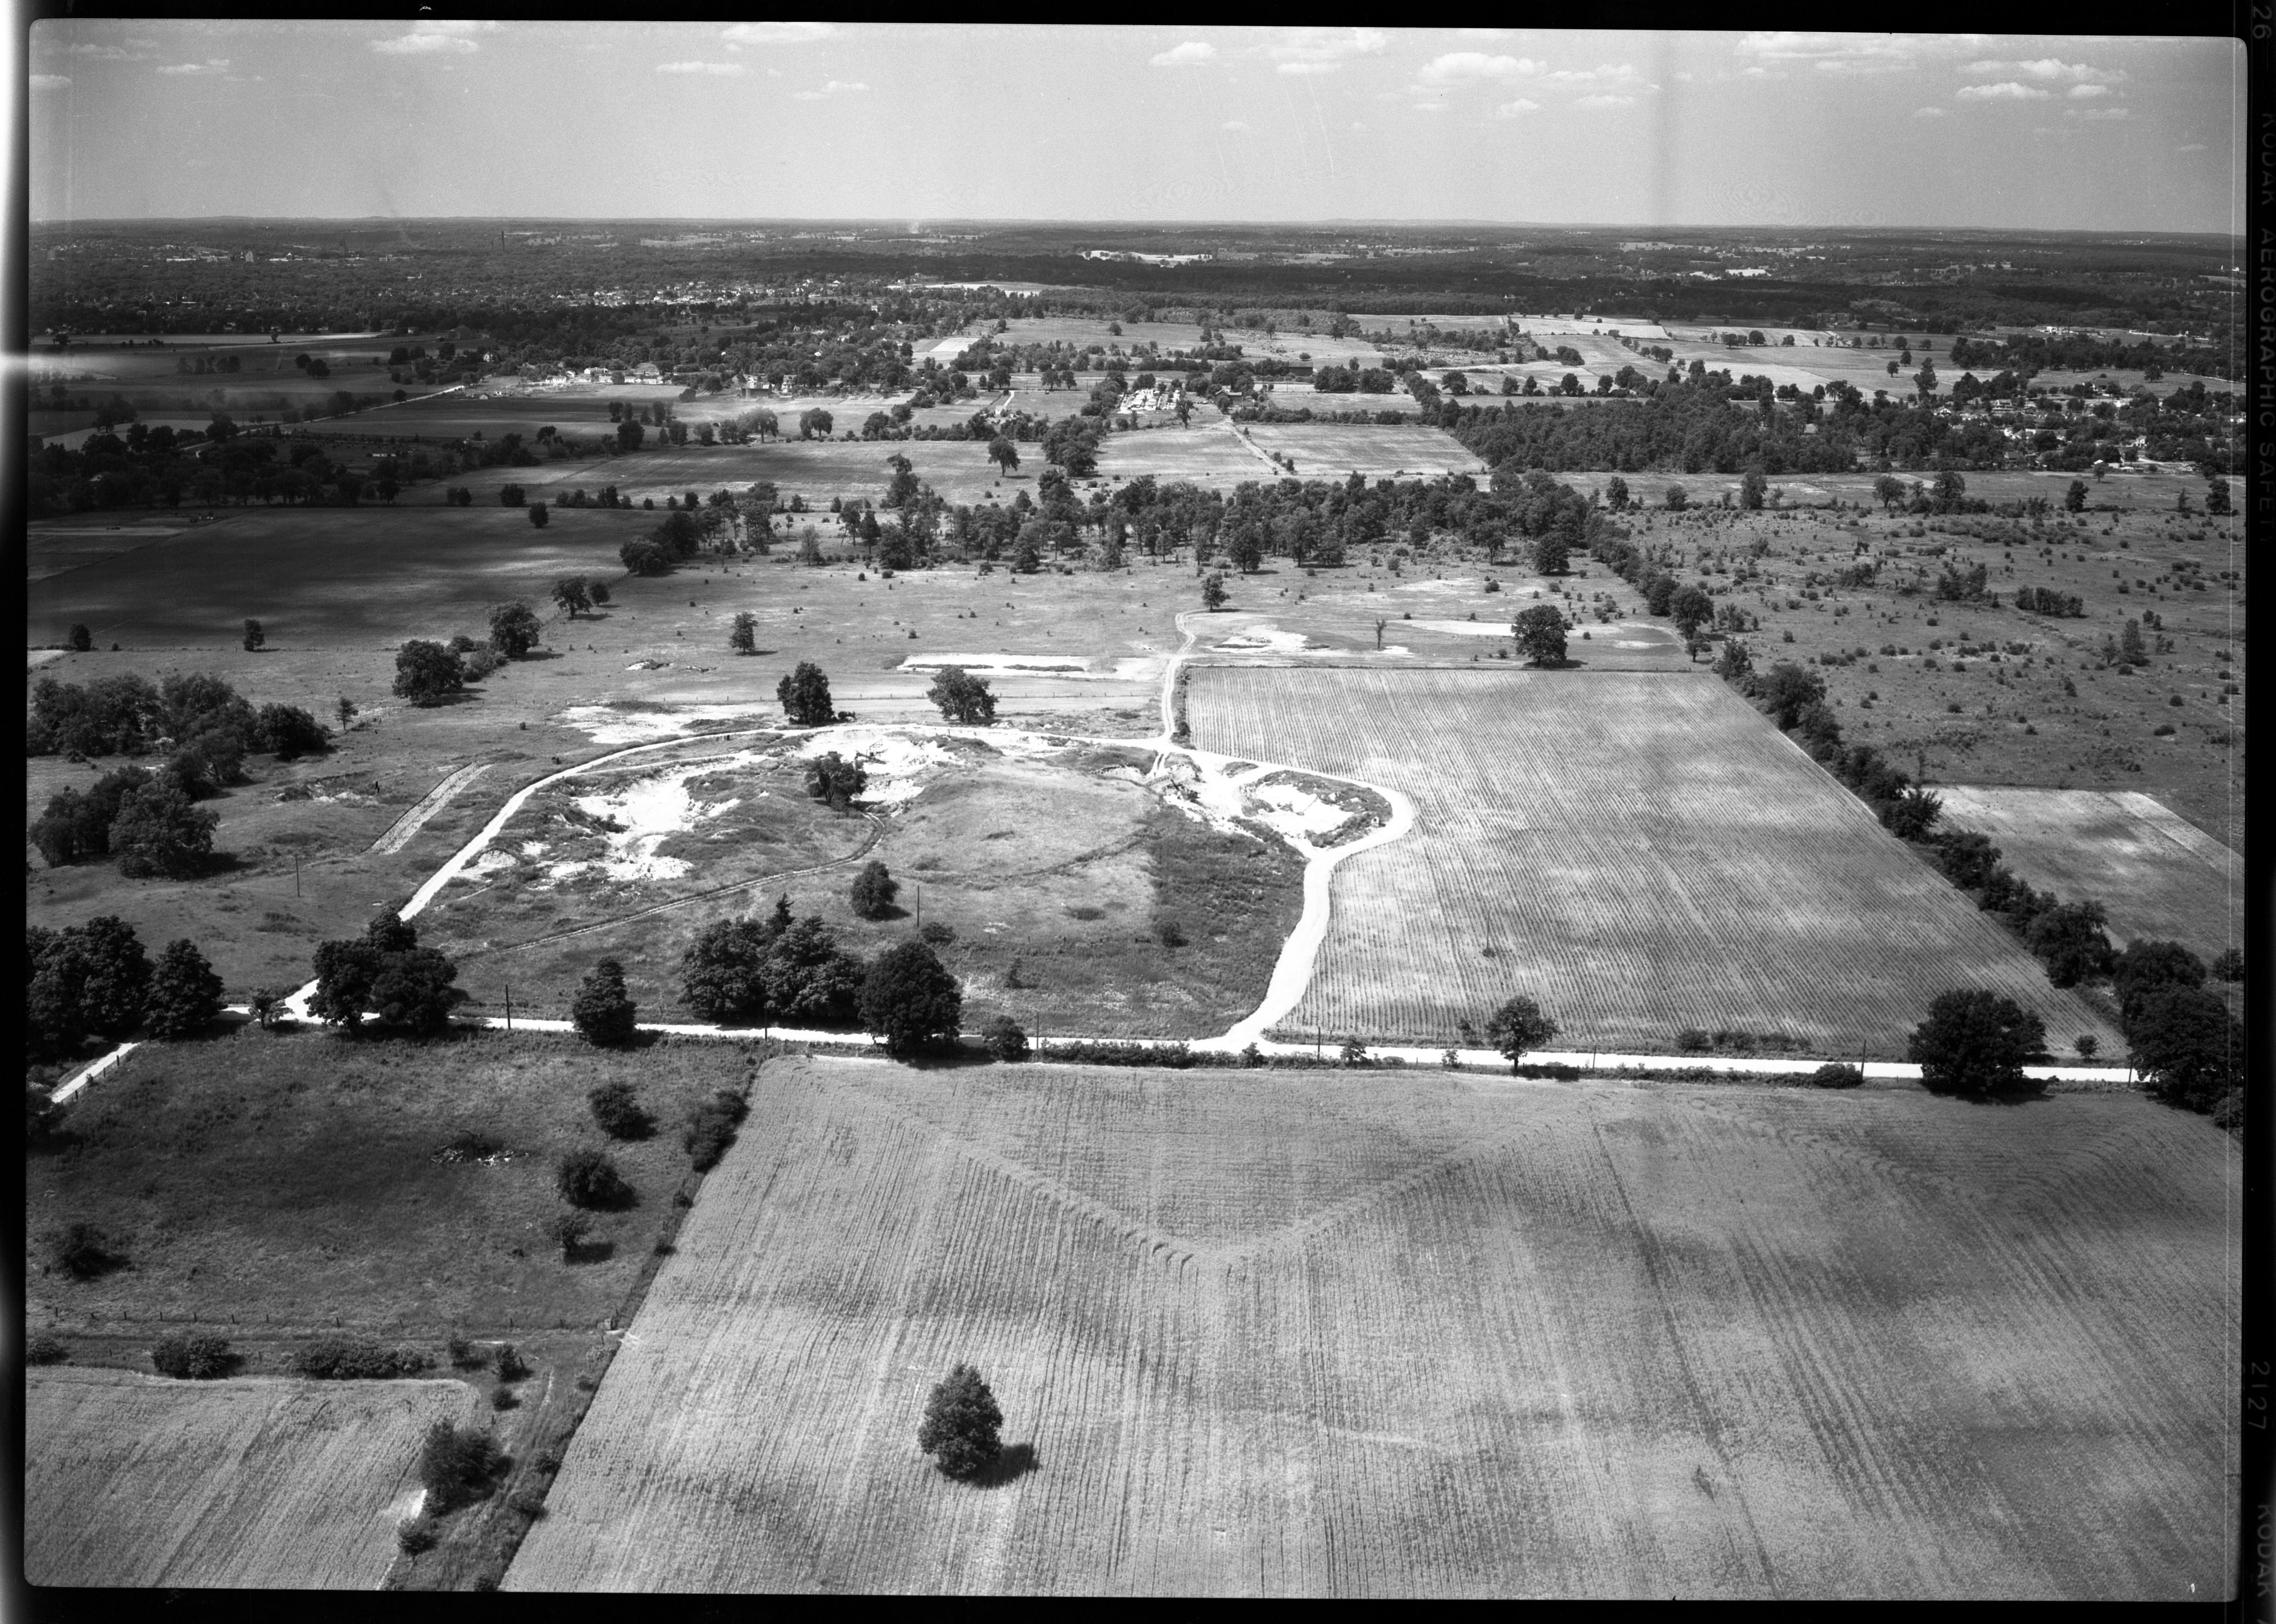 Aerial Photograph of a Proposed East Ann Arbor Sewage Disposal Site, July 1950 image